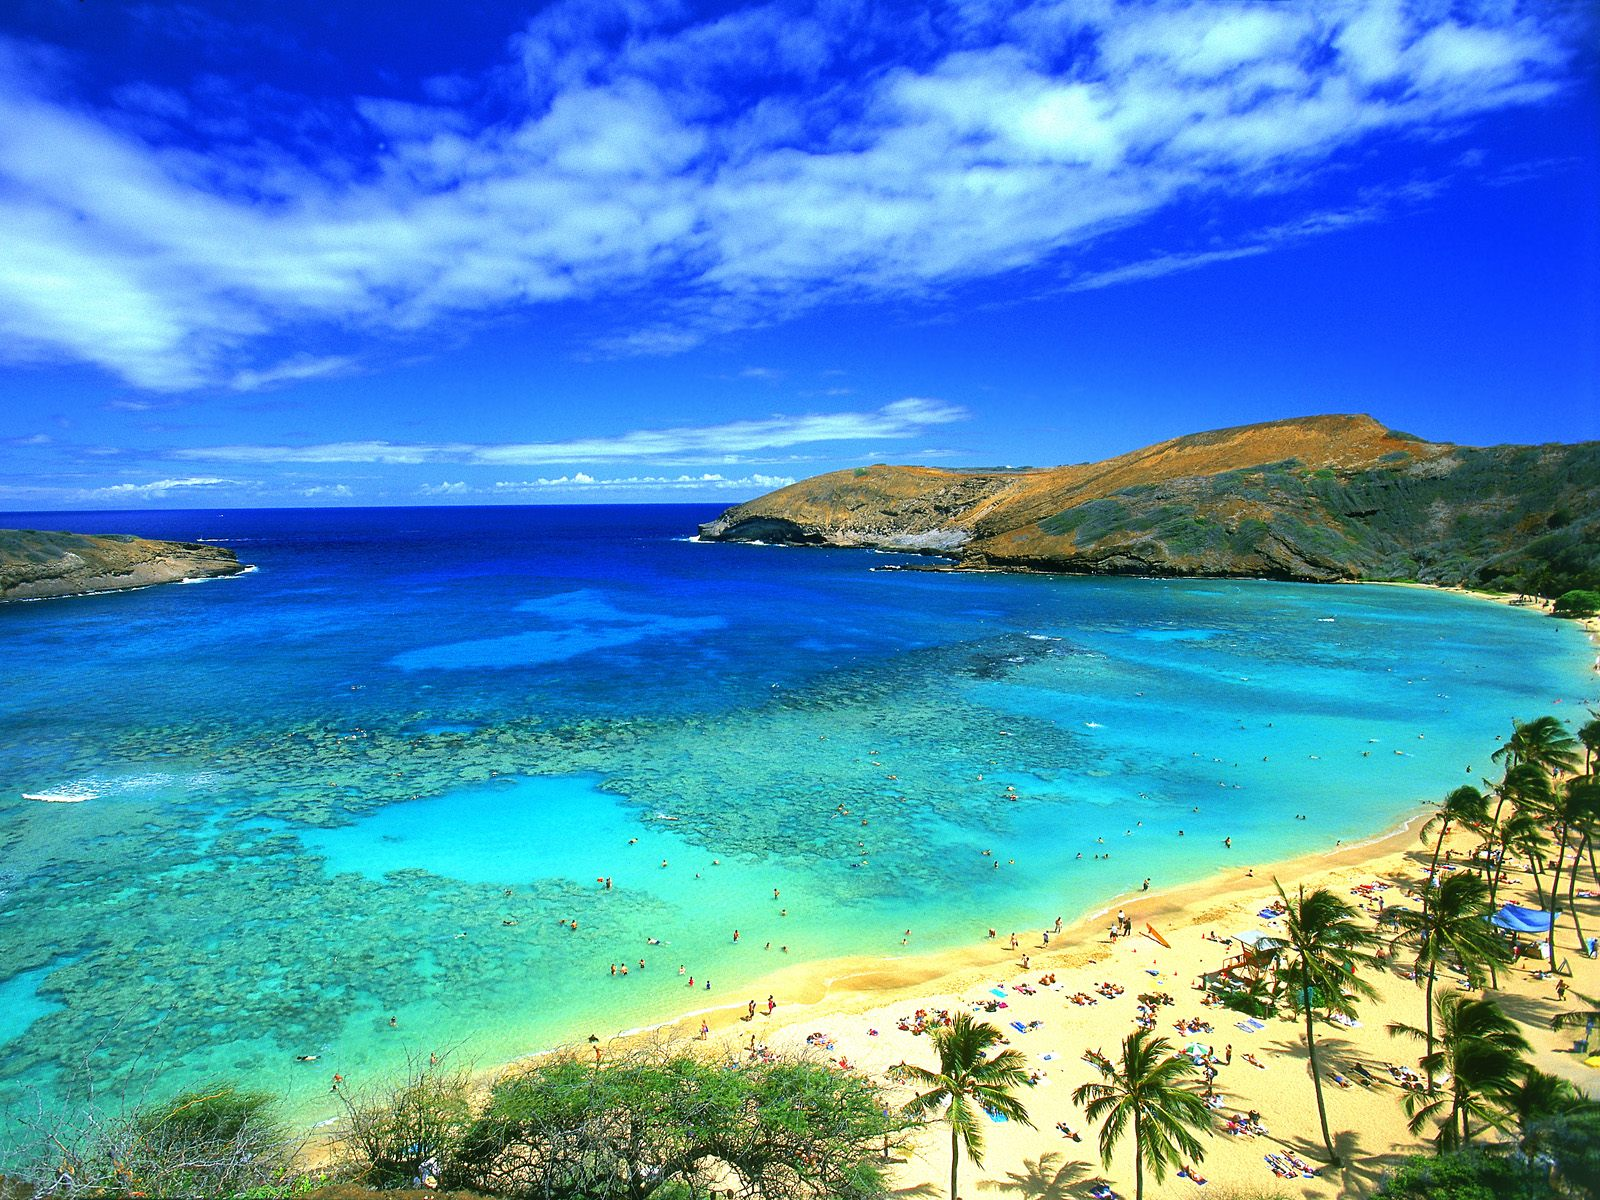 Hawaii Backgrounds - WallpaperSafari